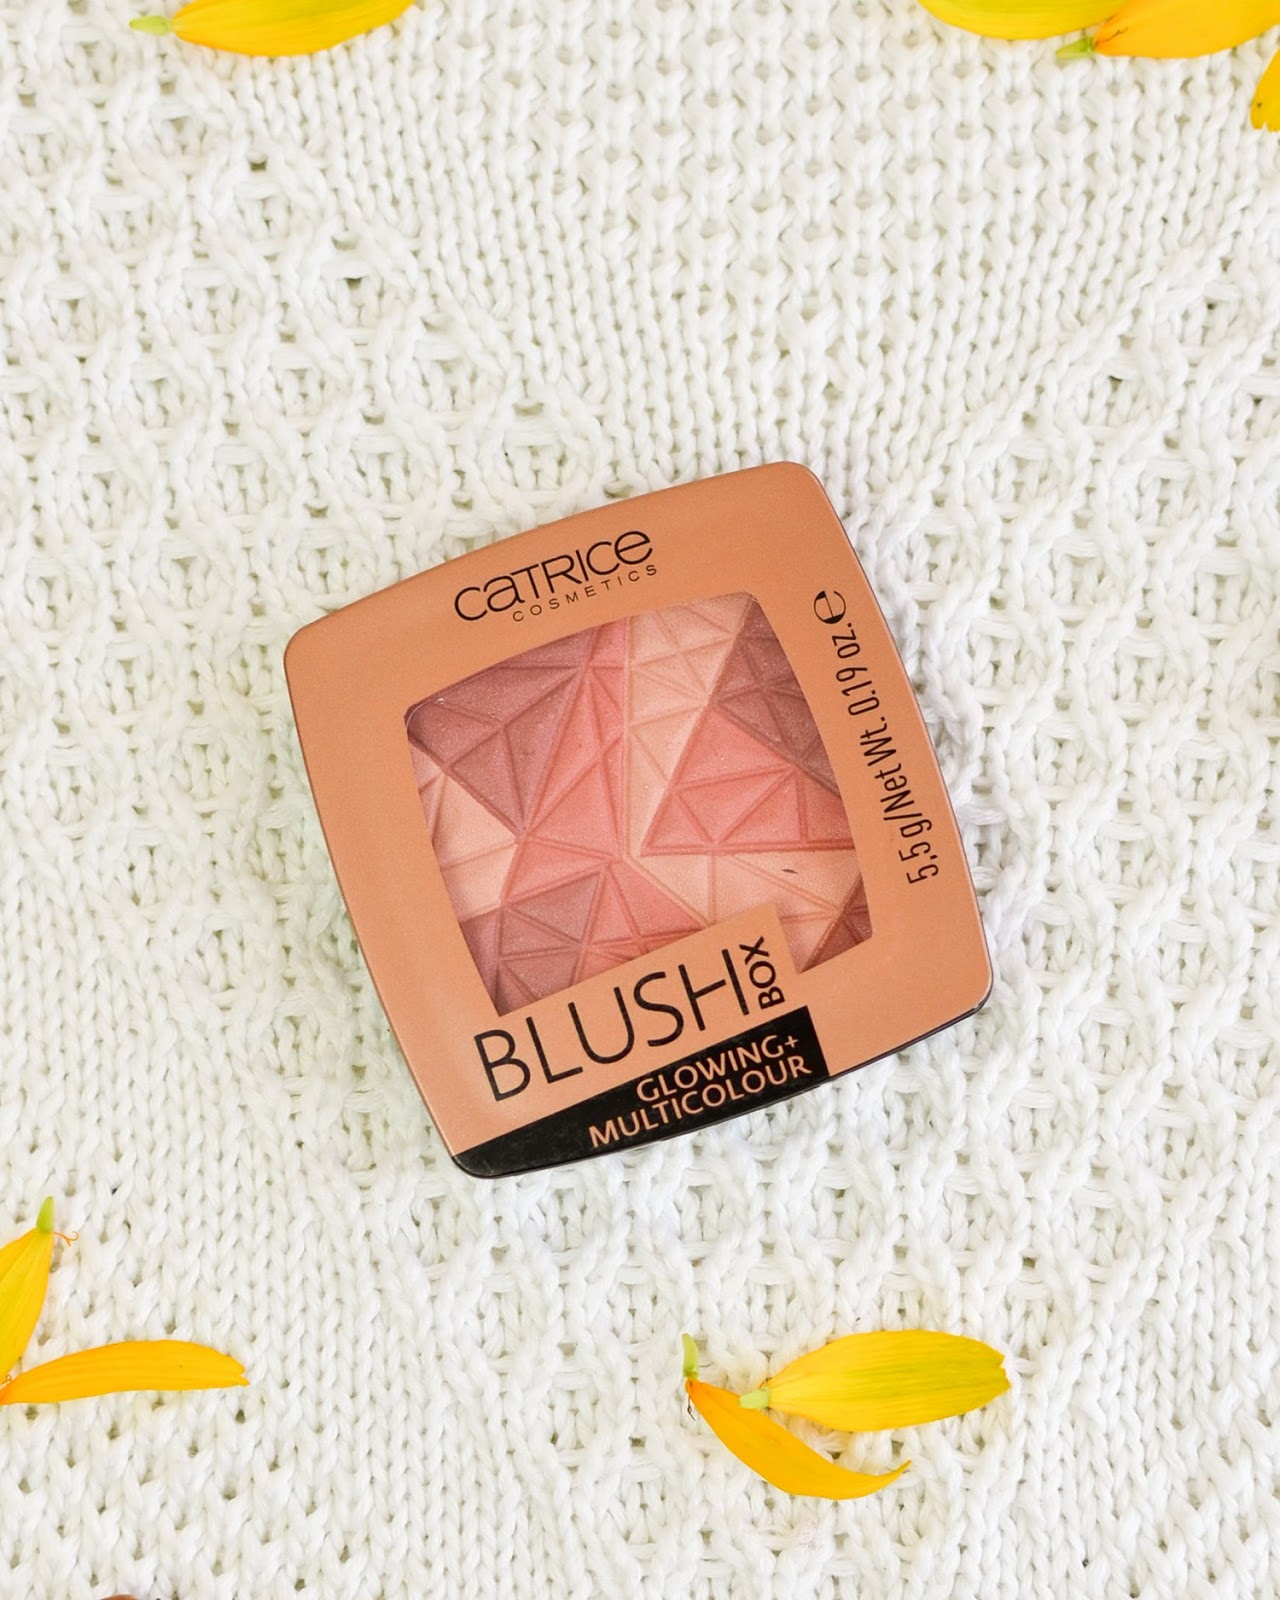 Catrice Glowing and Multicolour Blush Box 020 It's Wine O'Clock